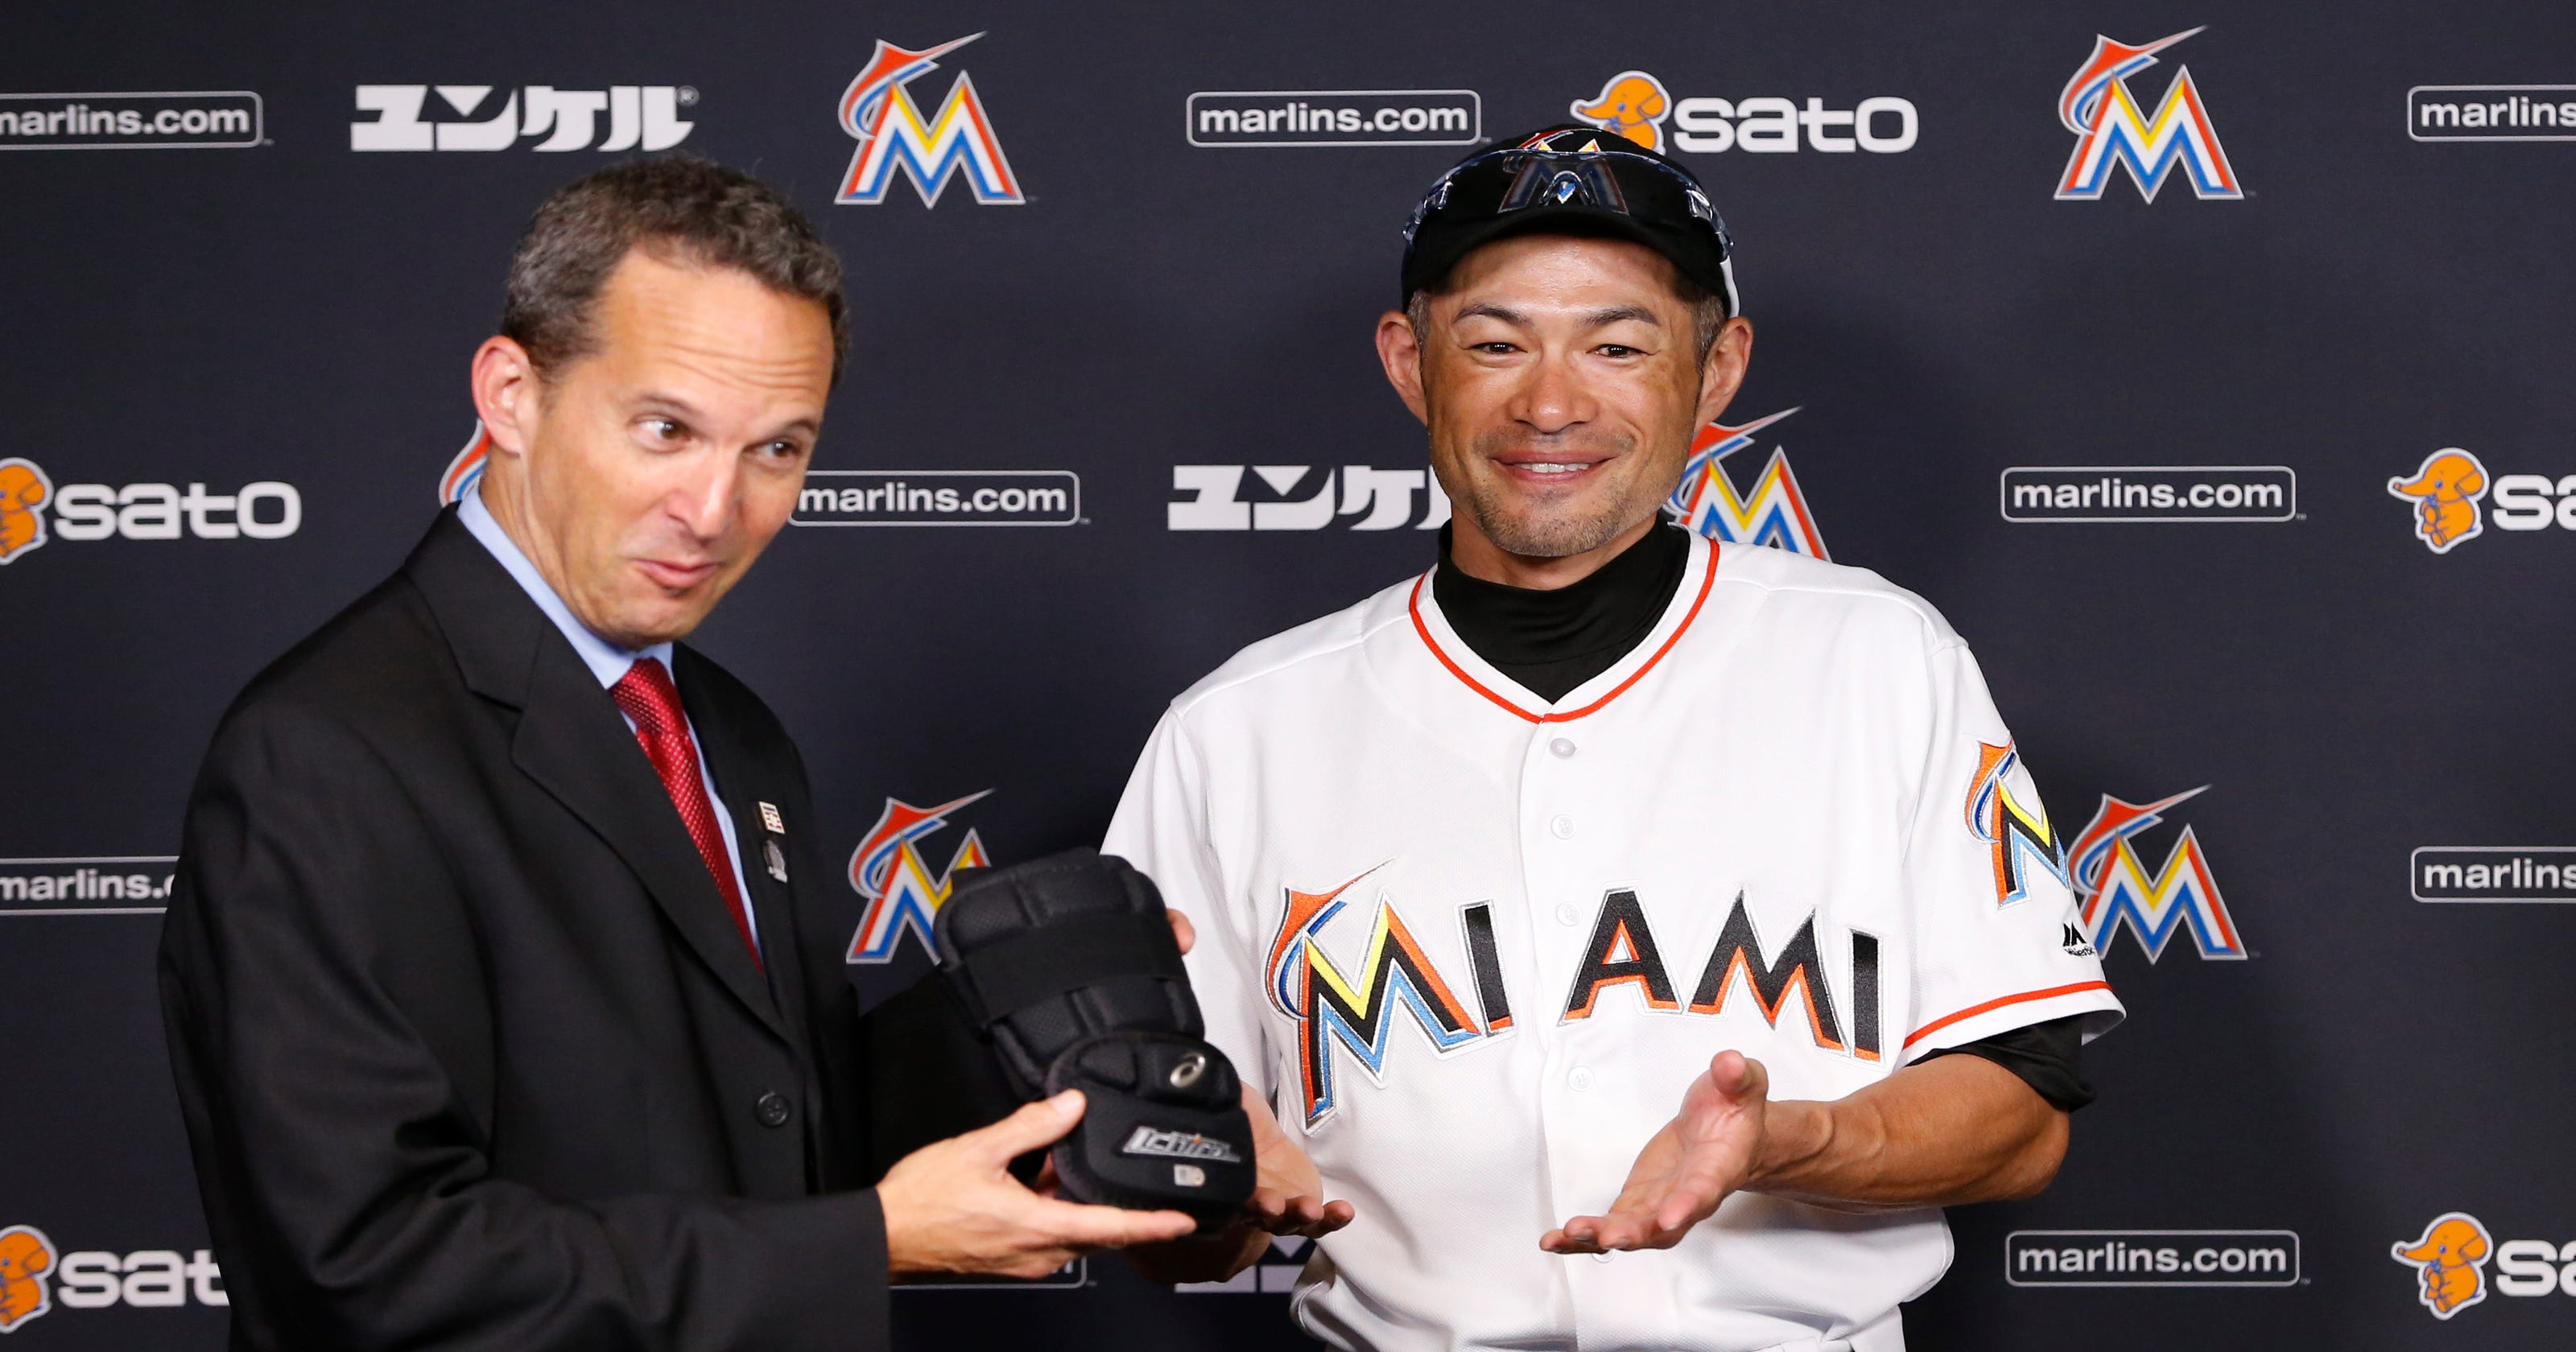 new products 6aad1 fdce4 Ichiro Suzuki donates 3,000-hit souvenirs to Hall of Fame